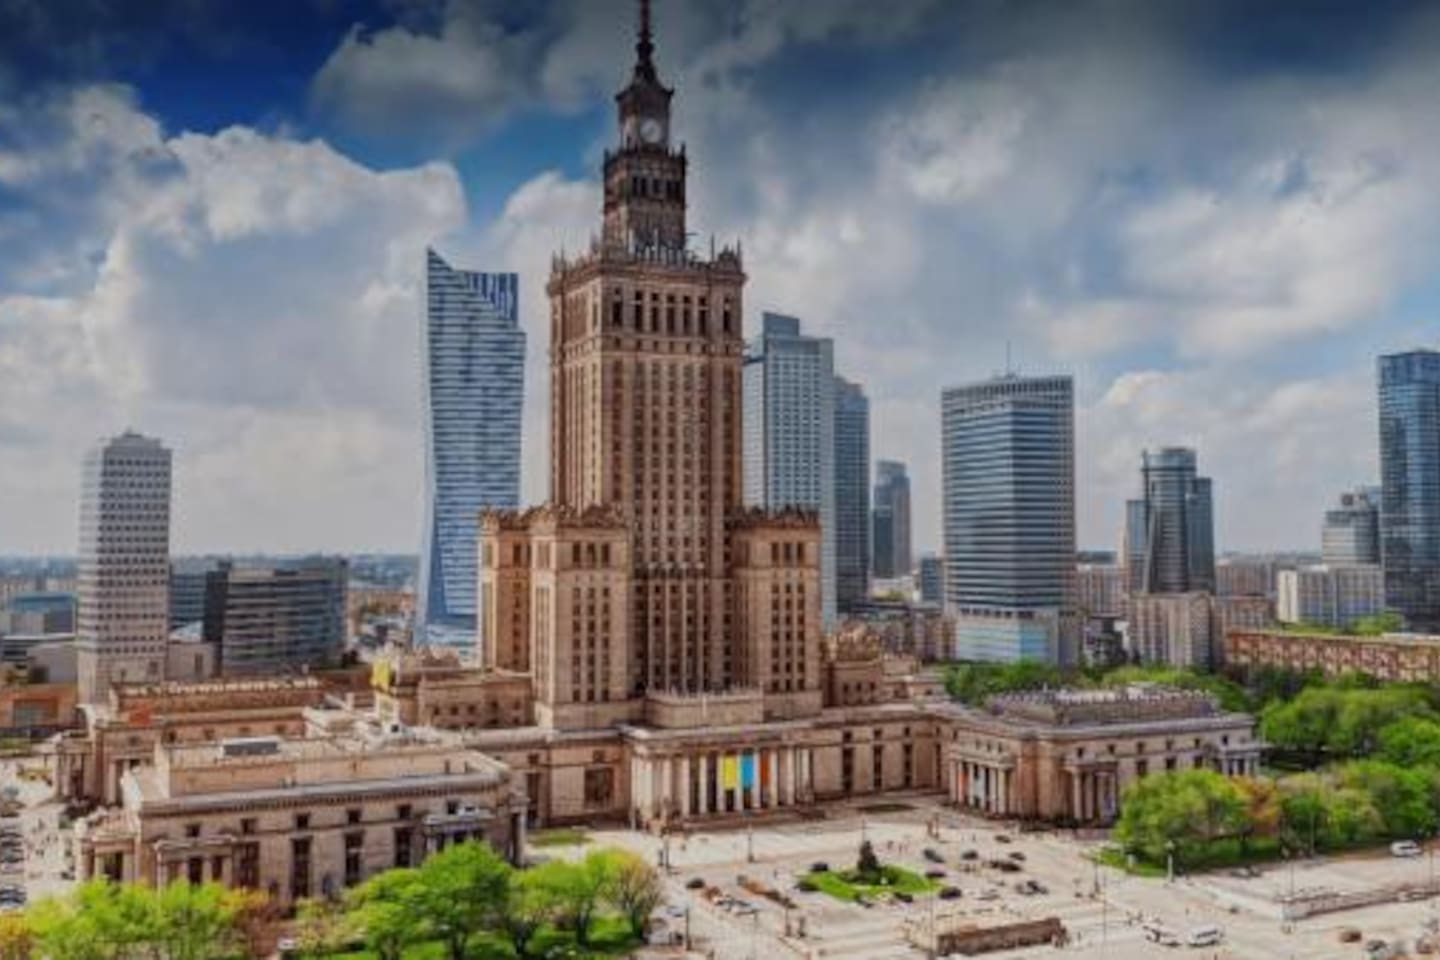 """Main attraction called """"Palace of Culture"""". It is Siviet's """"gift"""" to Polish people but it was a sign of Soviet's Russian domination."""